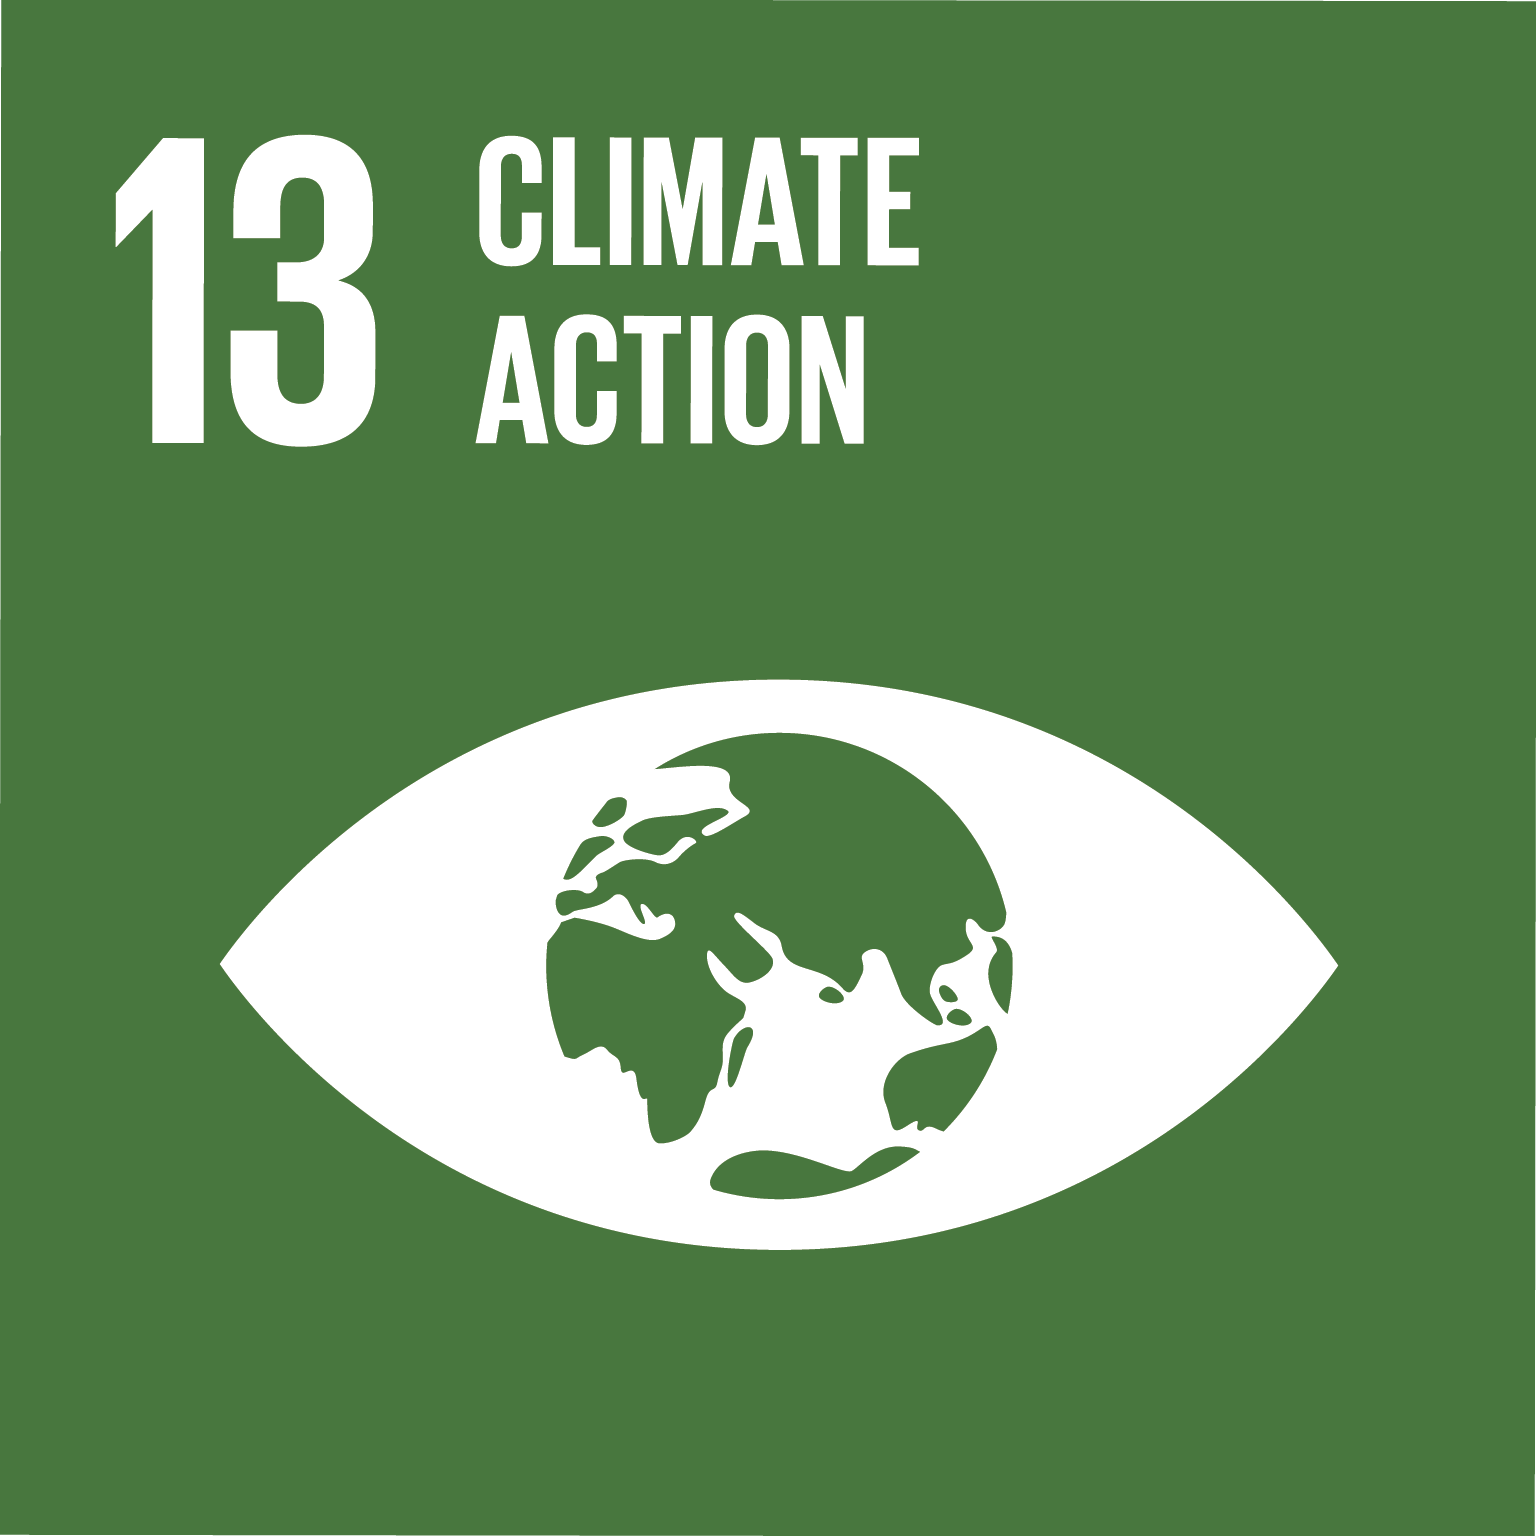 6th Class Call for Urgent Action on Climate Change